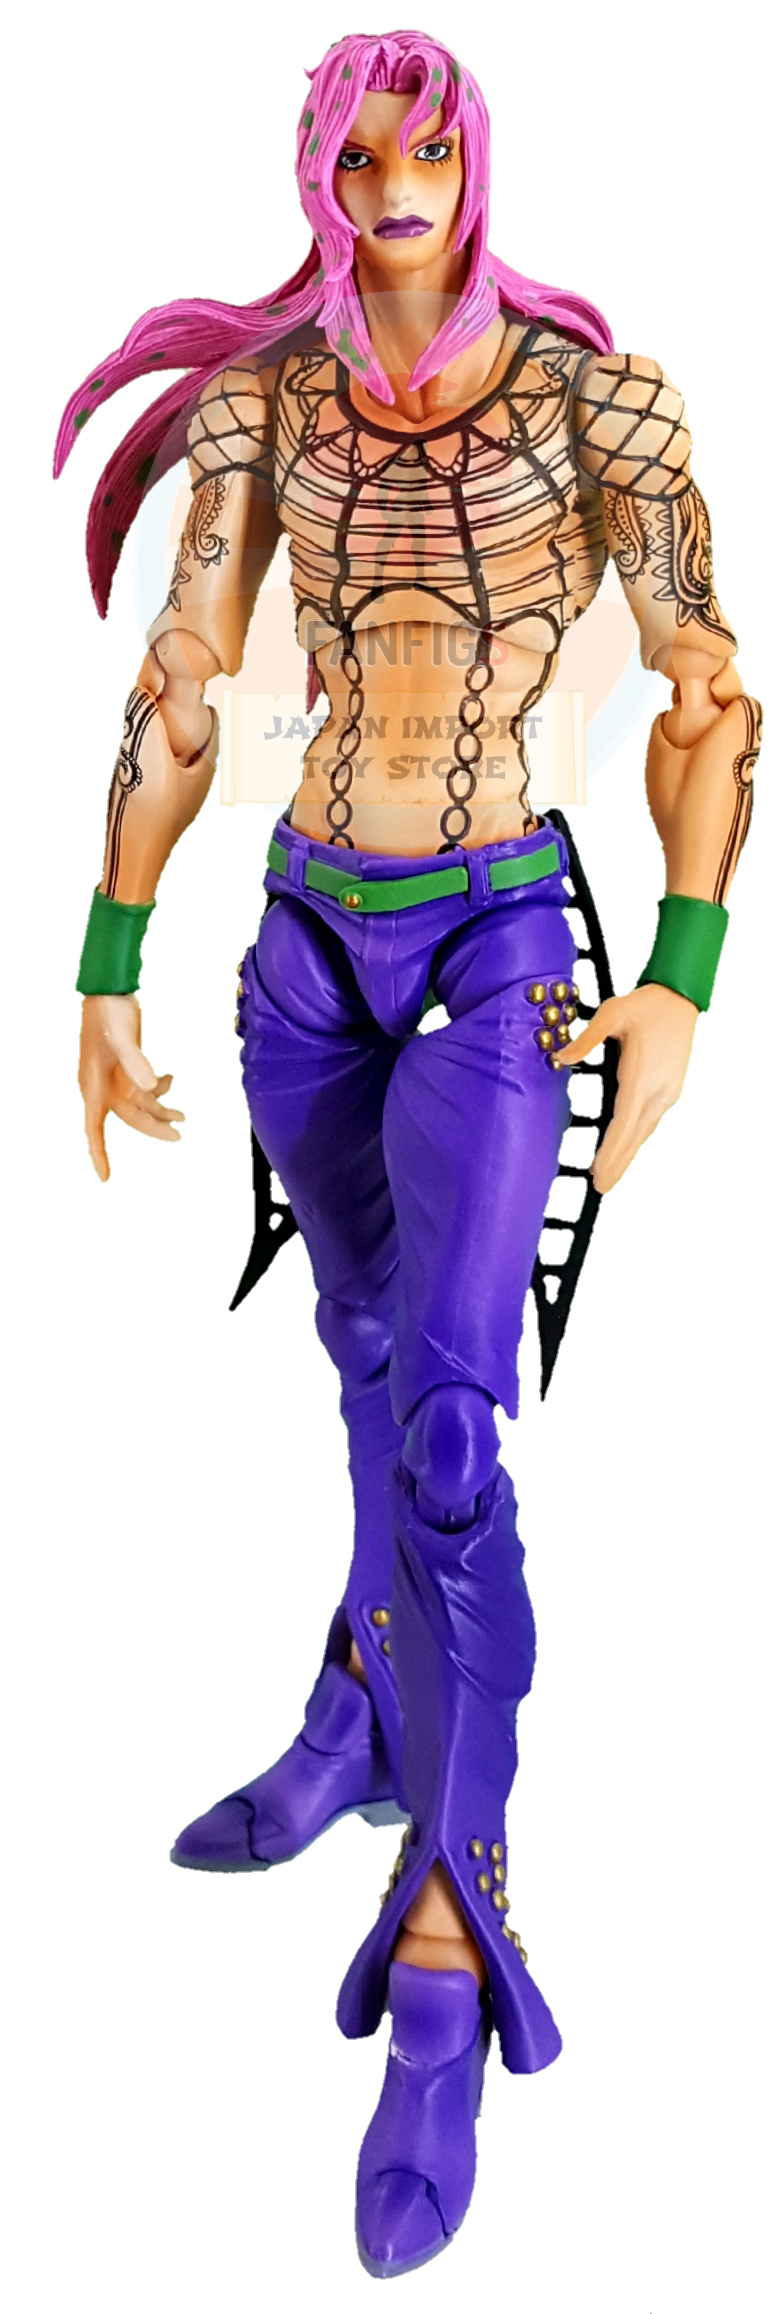 SAS JOJO Diavolo, Jojo's Bizarre Adventure Part 5, Vento Aureo, Golden Wind